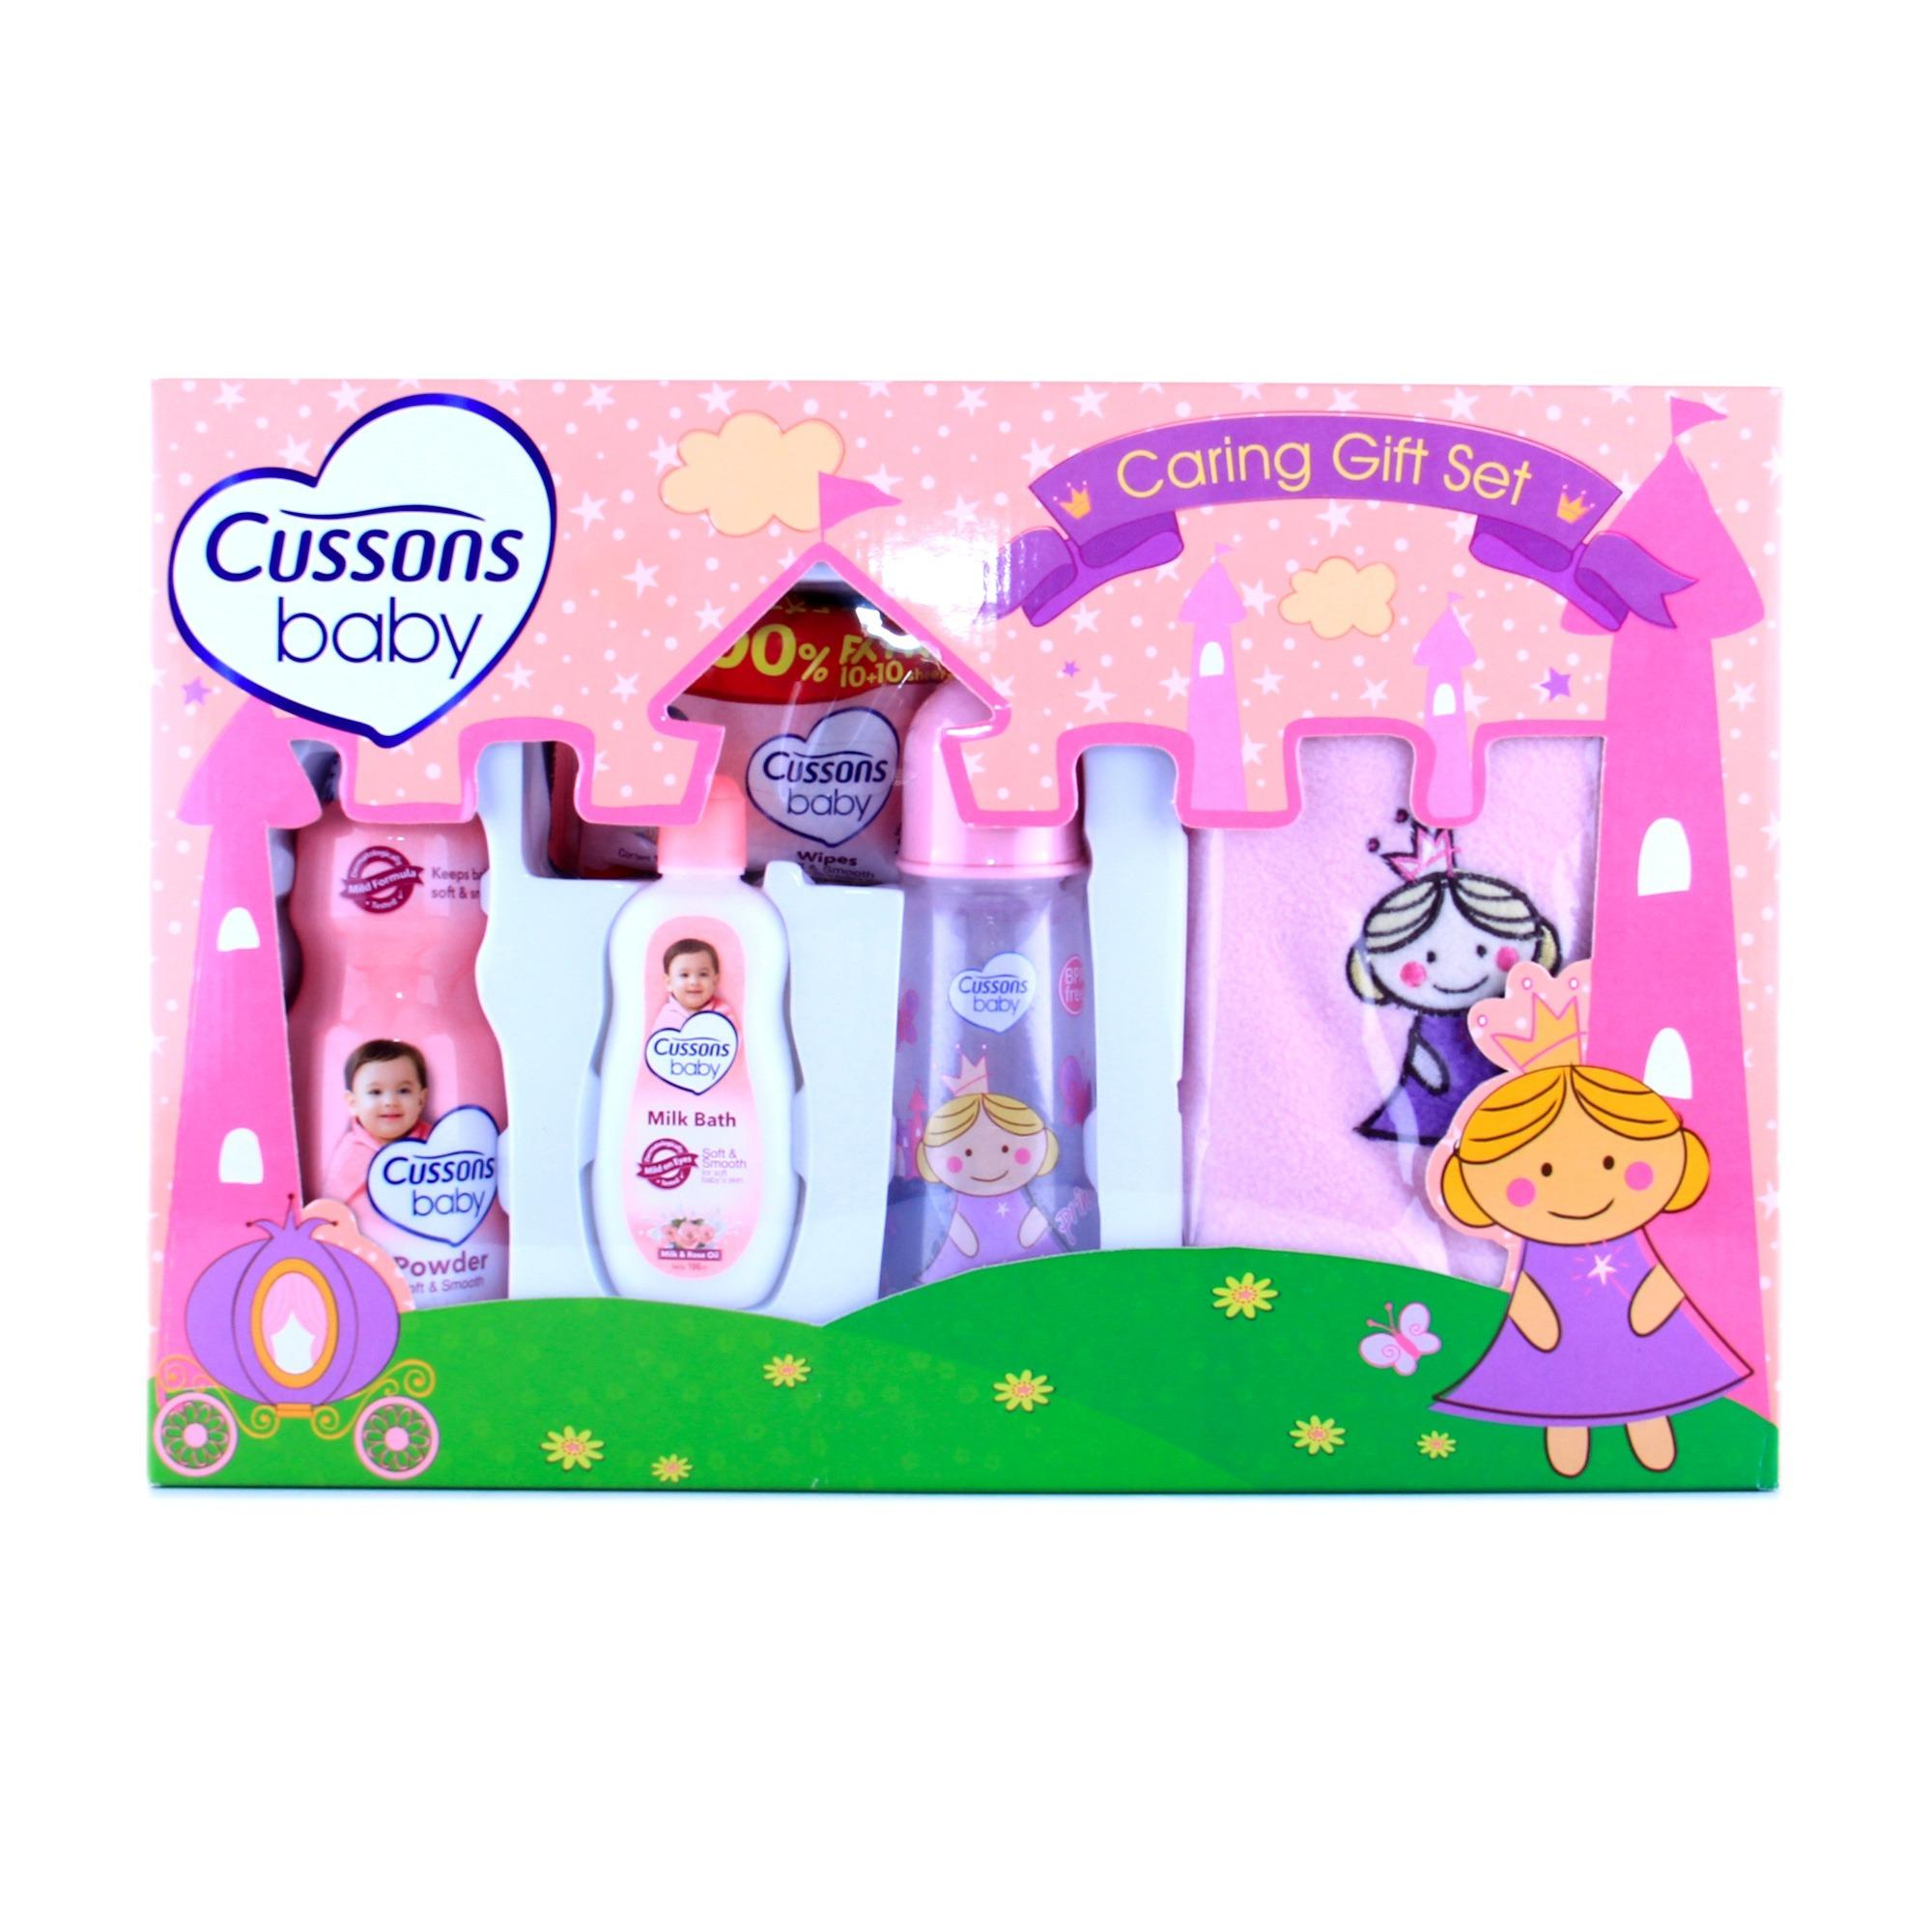 Diskon Cussons Baby Tissue Basah Naturally Refreshing Wipes Toko Cusson Tssue Botol Susu Caring Gift Set Girl Pink